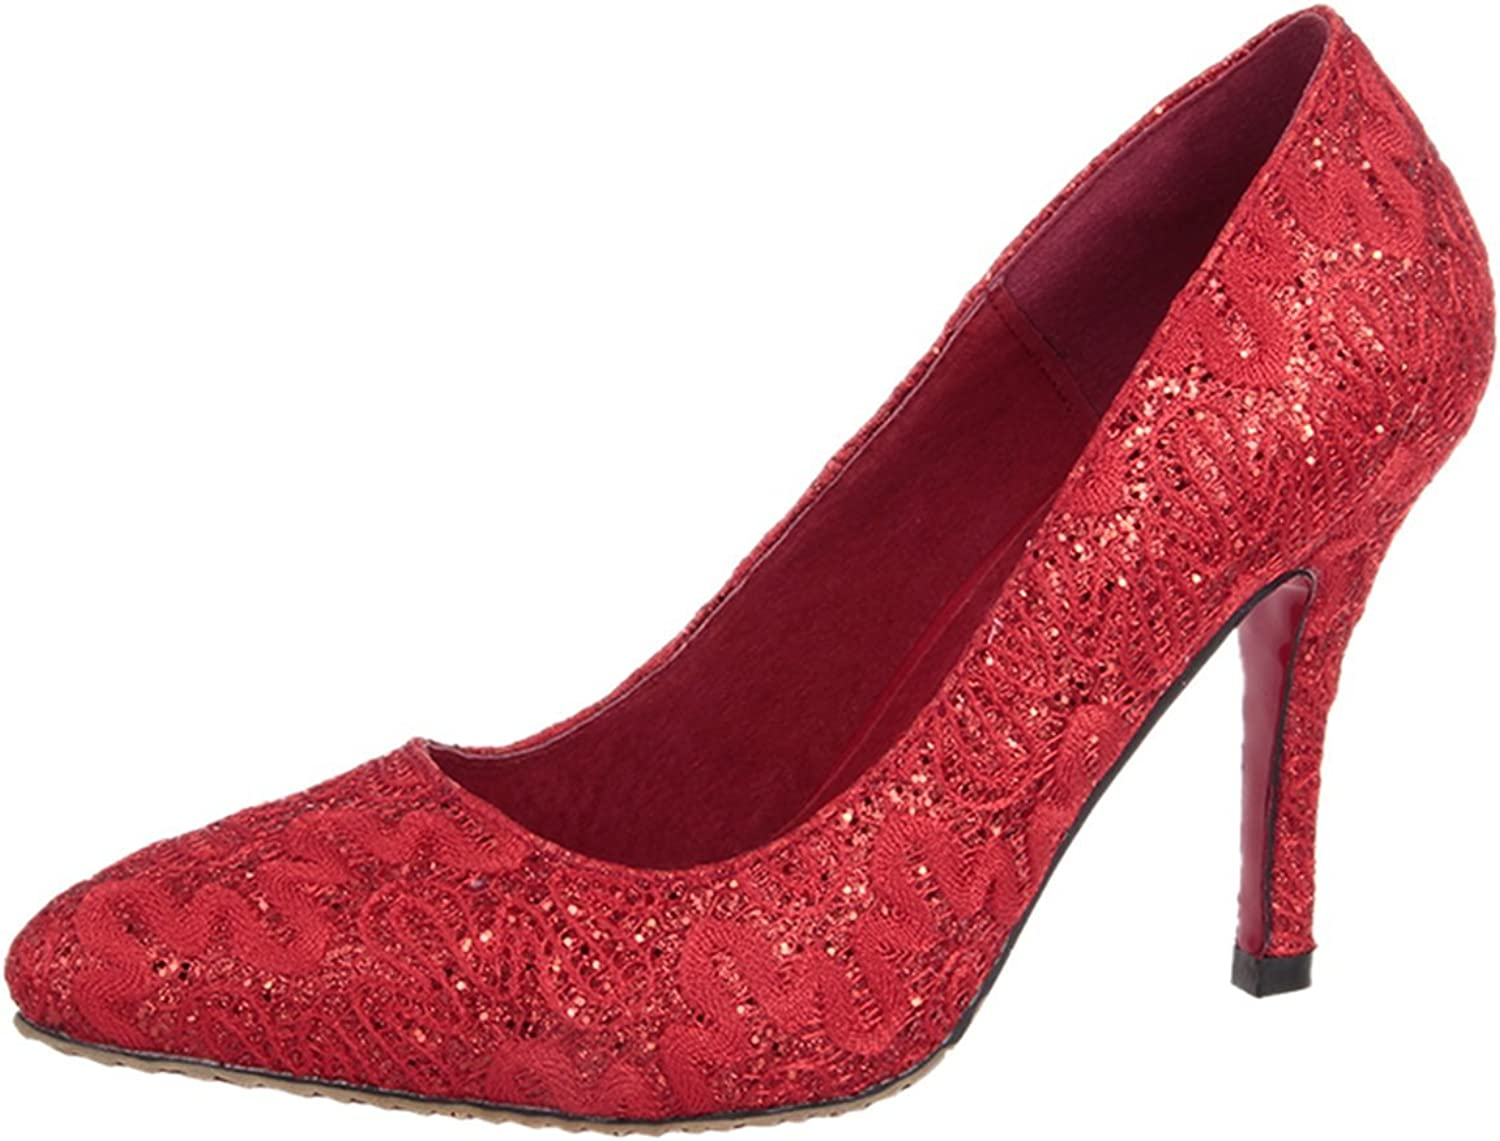 ONCEFIRST Womens Low Heel Lace Paillette Dress Pumps